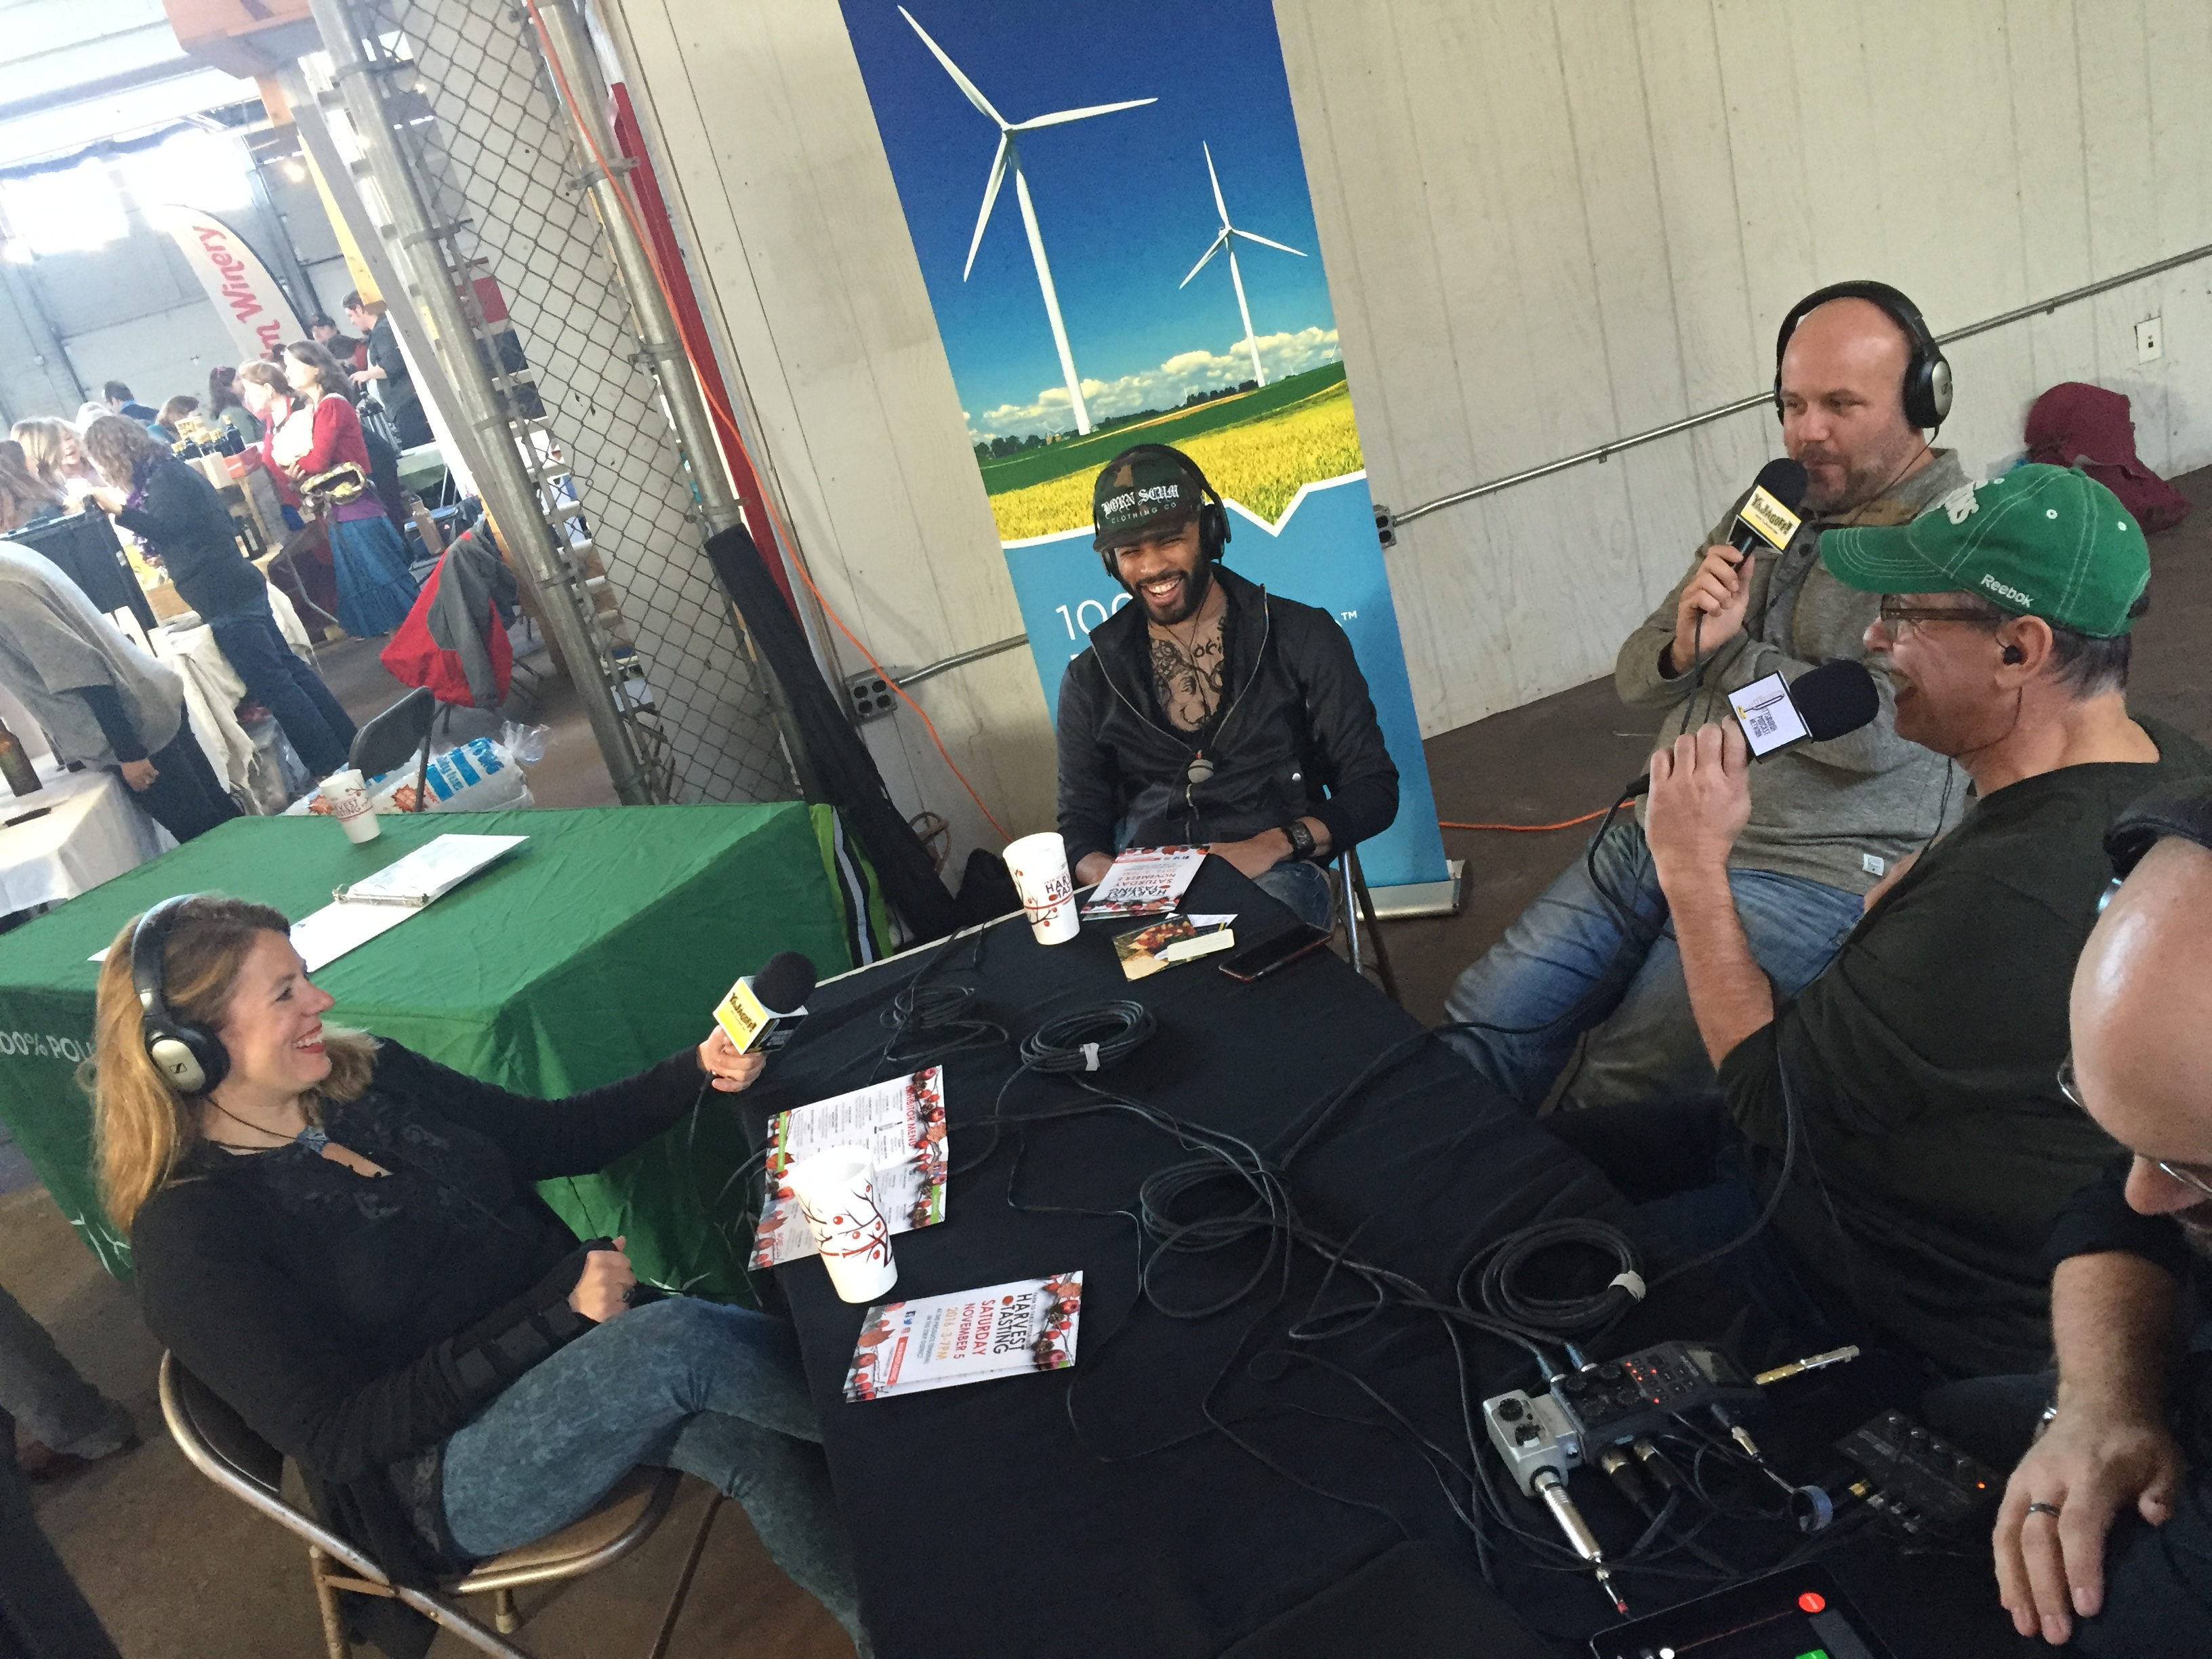 YaJagoff Podcast ecording at the Farm to Table event